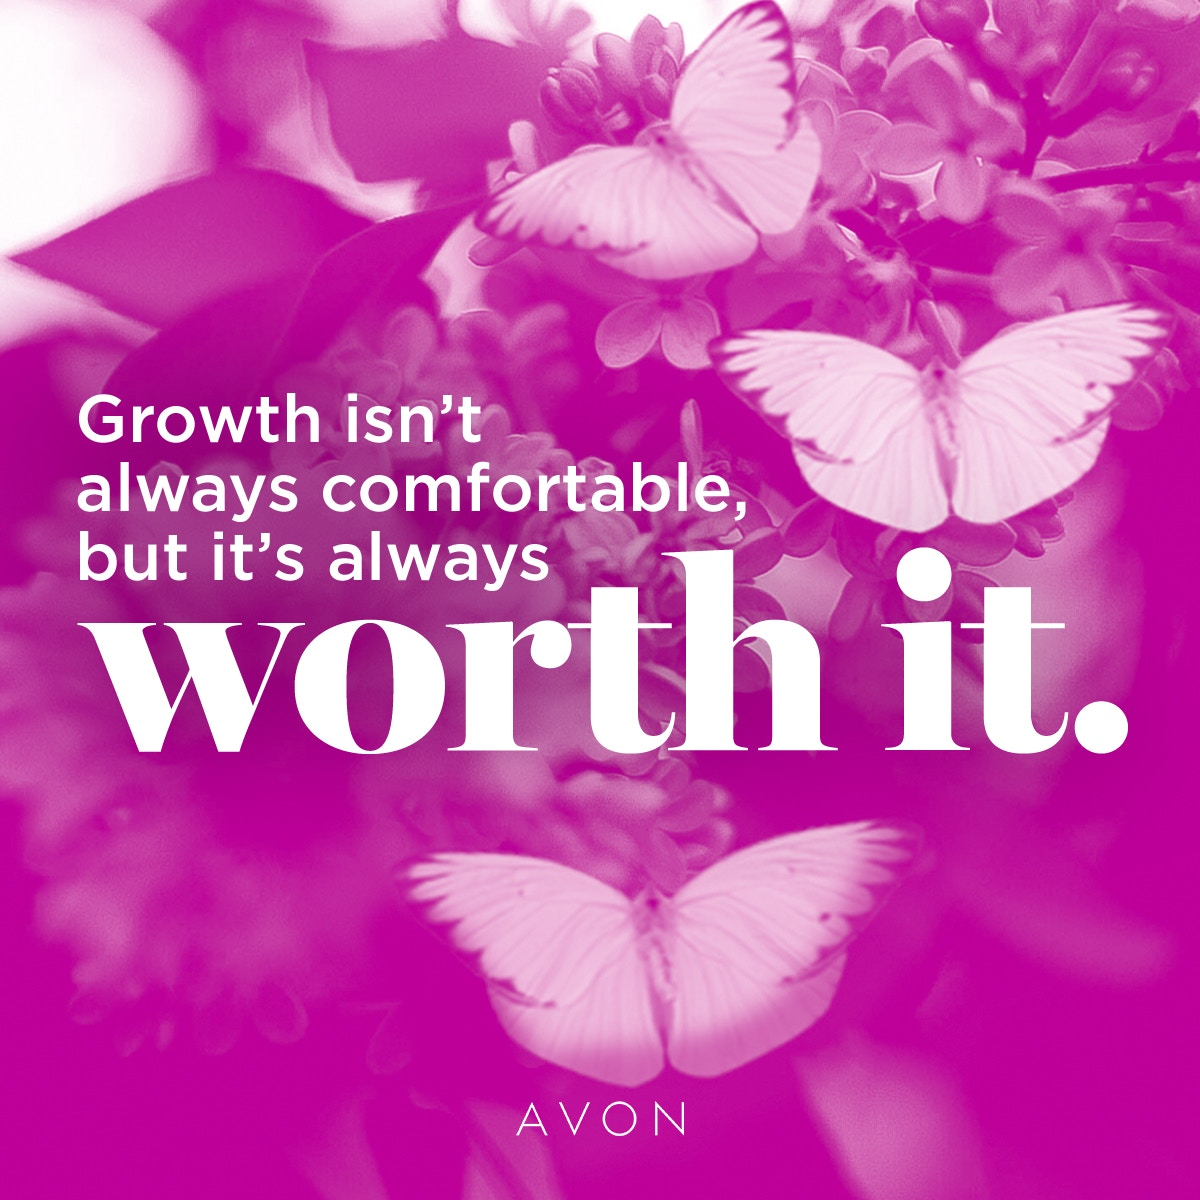 We #grow in so many ways: through people, #experiences, feelings, birth, death, happiness, sadness, grief......always try to look for the #lesson in all that you go through! #lookforthelesson #growth https://t.co/oeWUrqnmd0